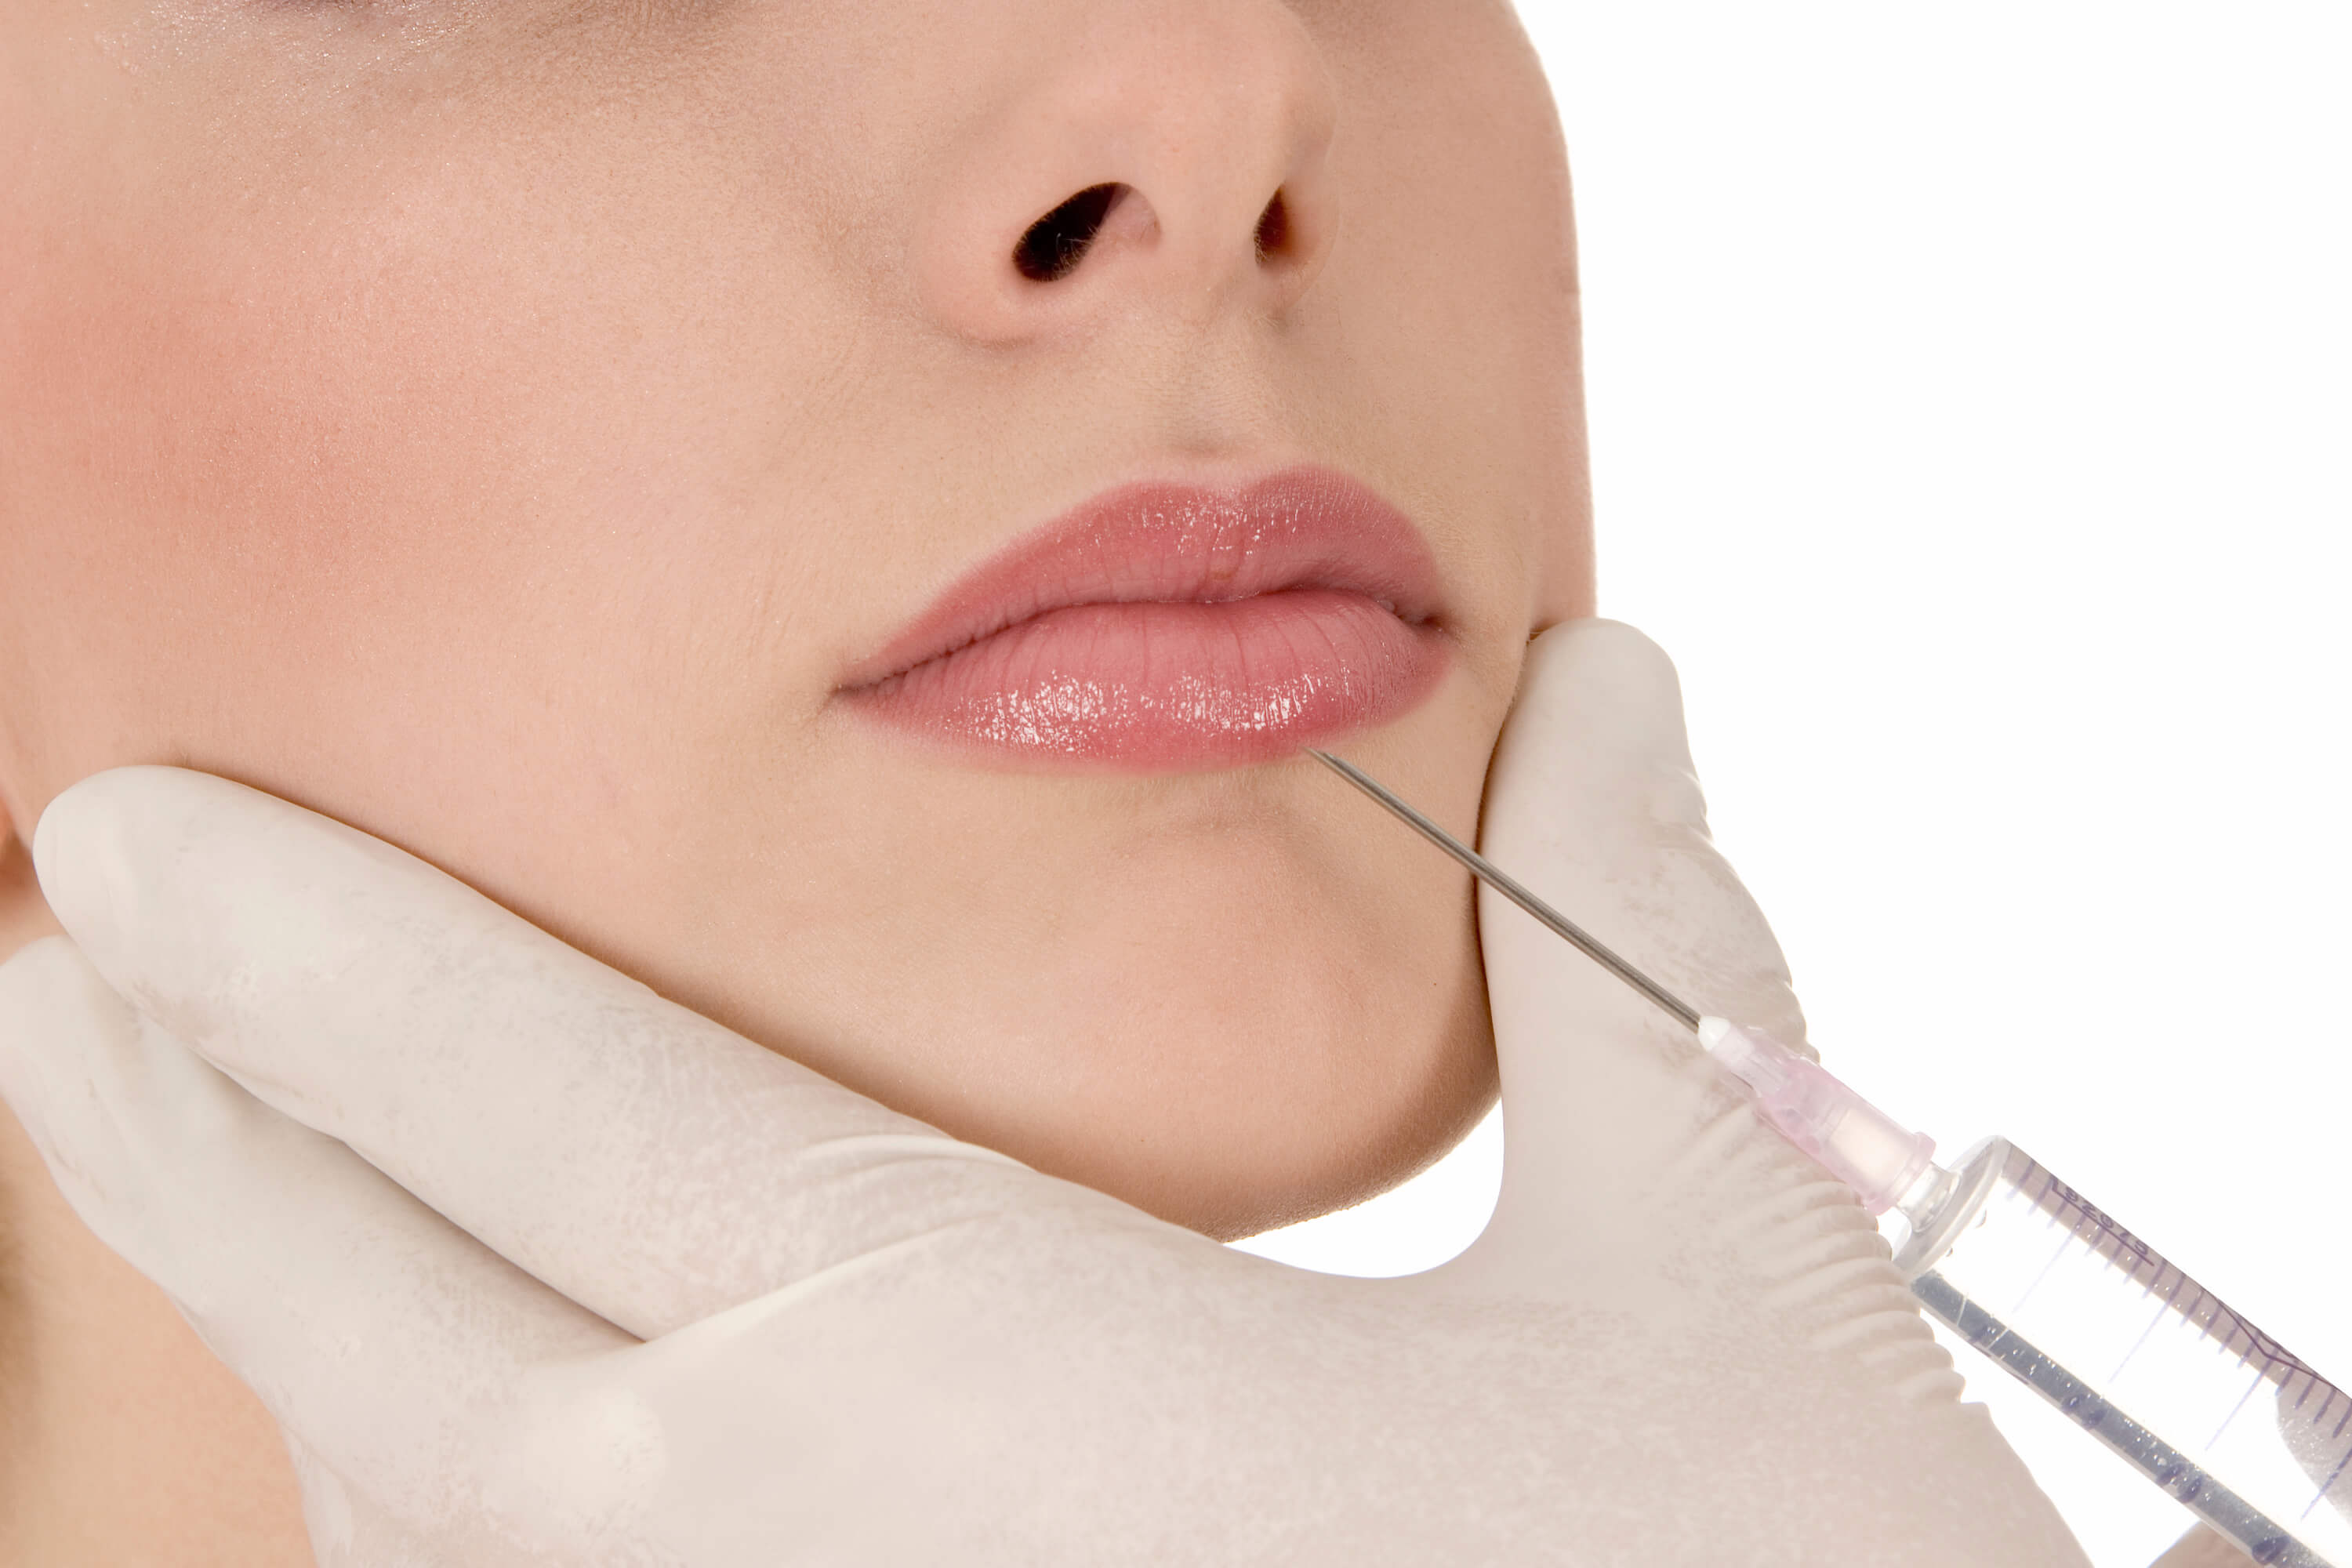 woman getting injection to lips to enhance her lip shape